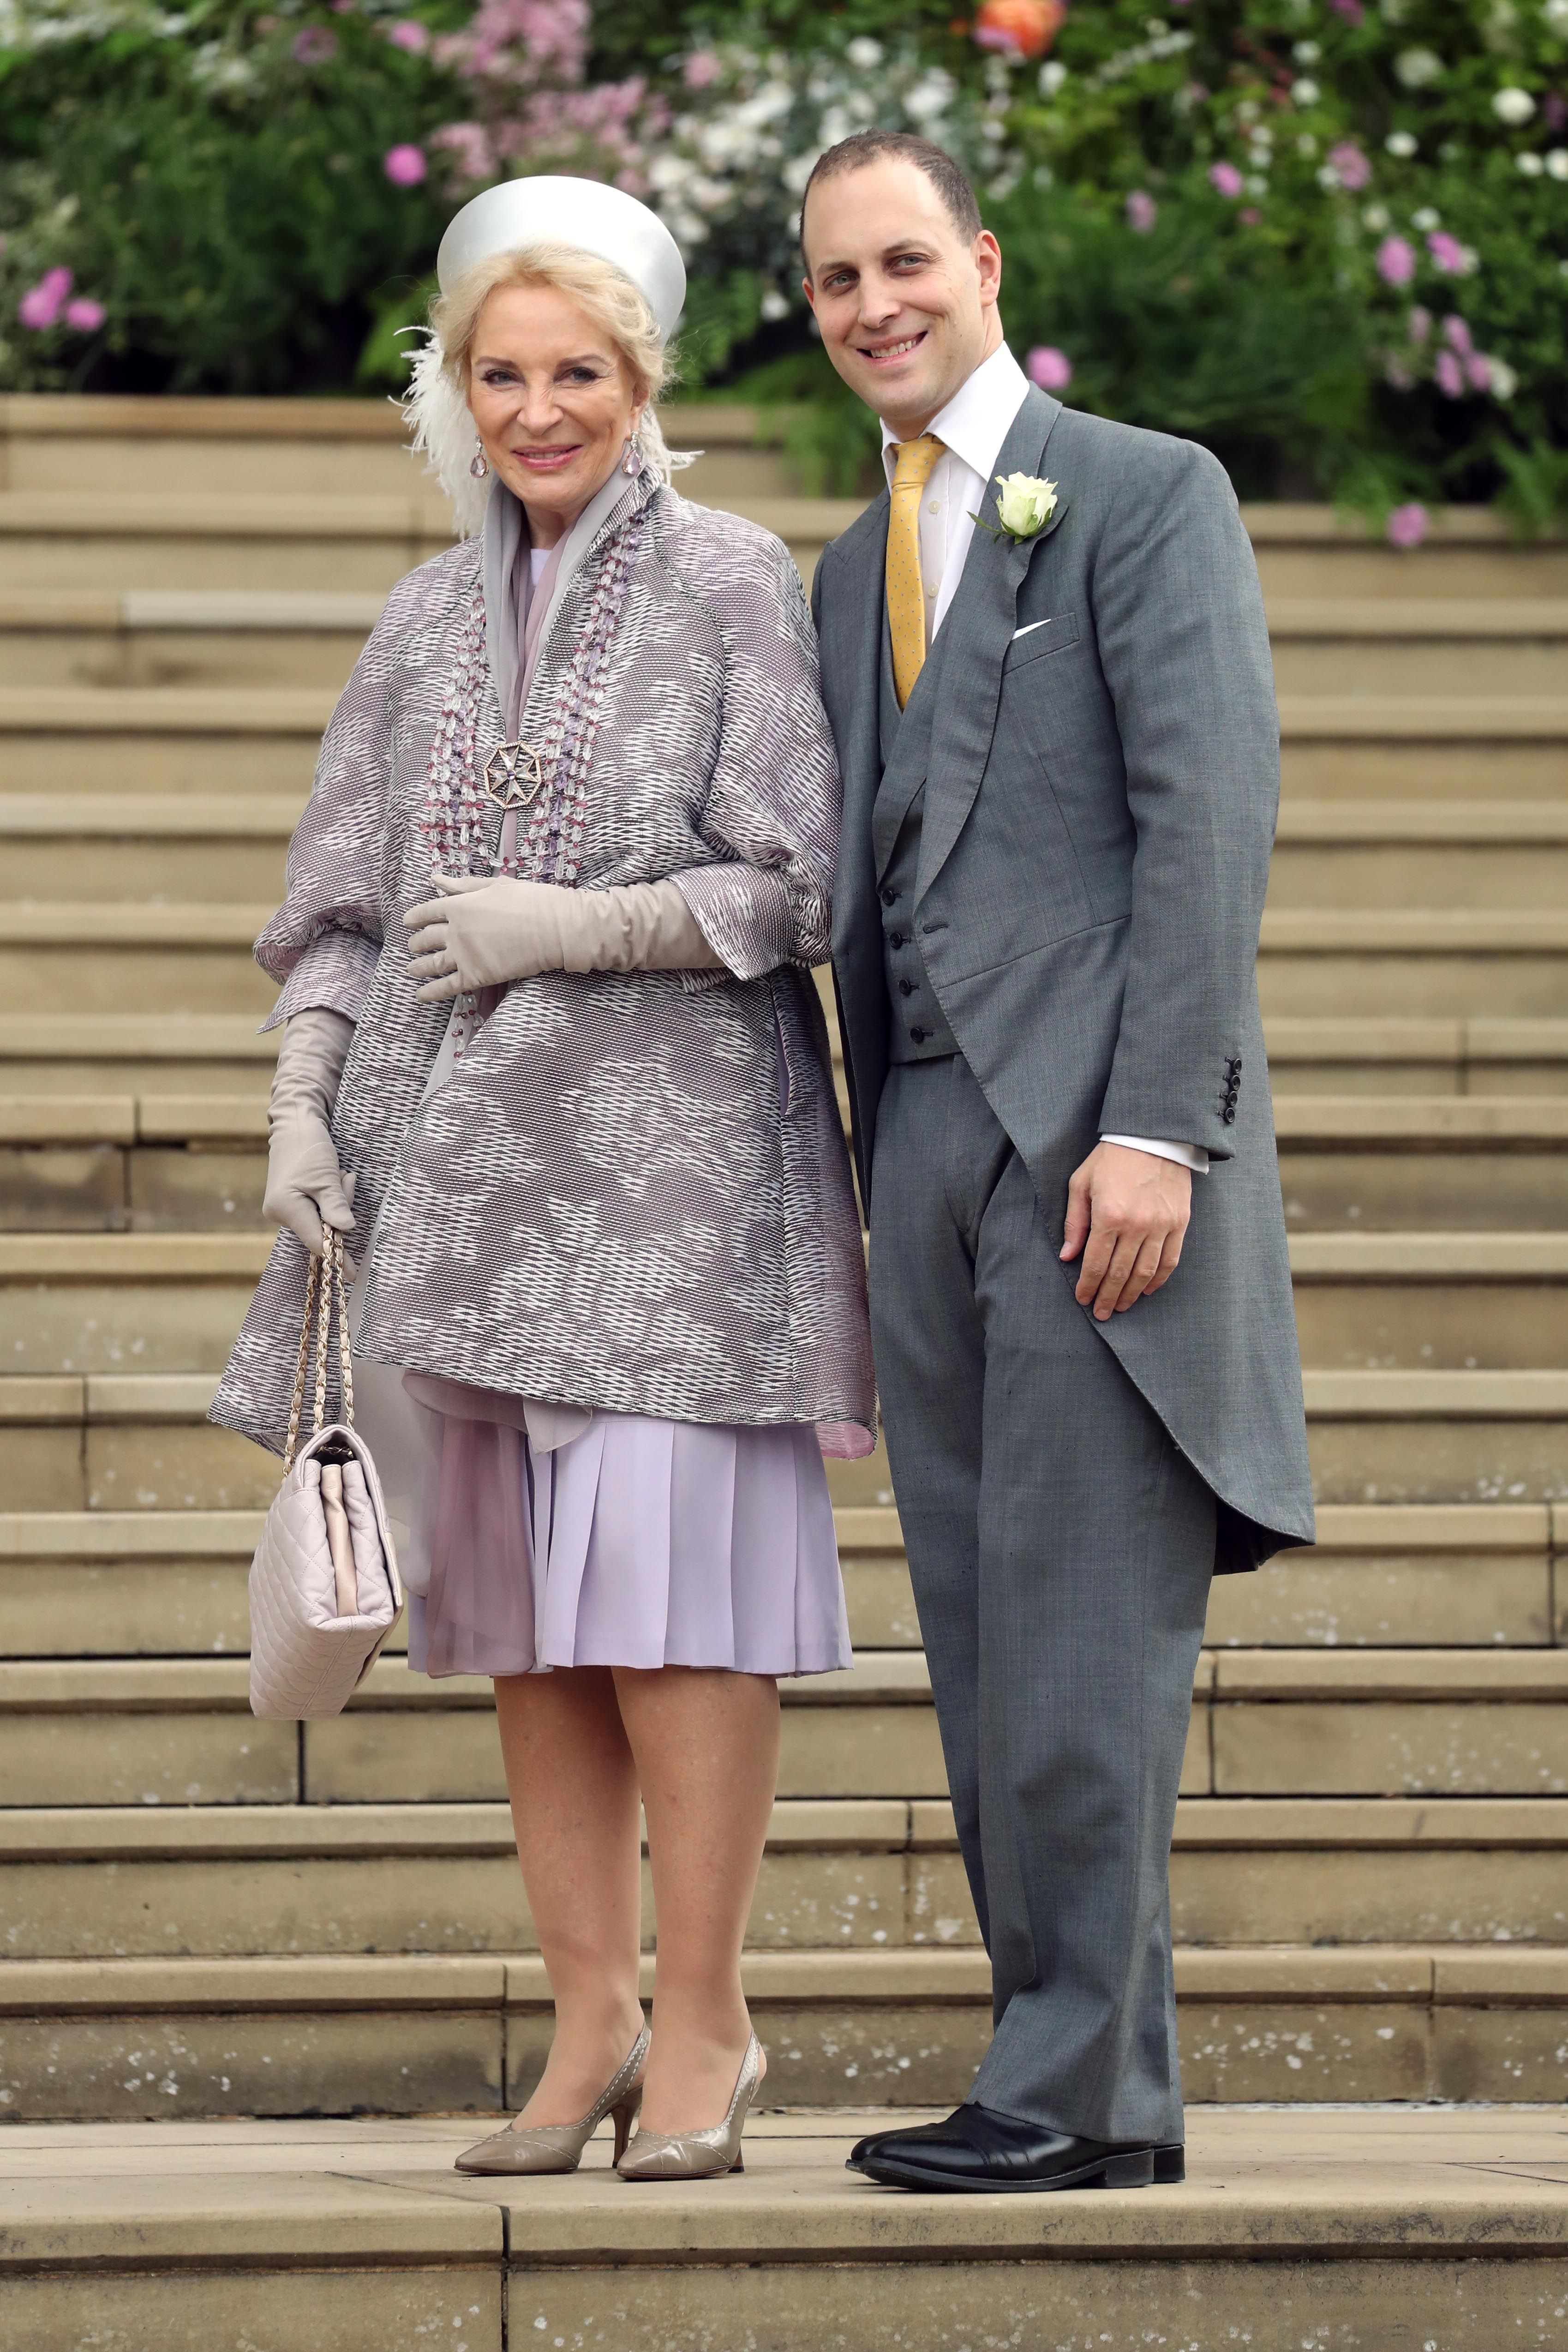 The bride's mother and brother arrive to St George's chapel in Windsor.